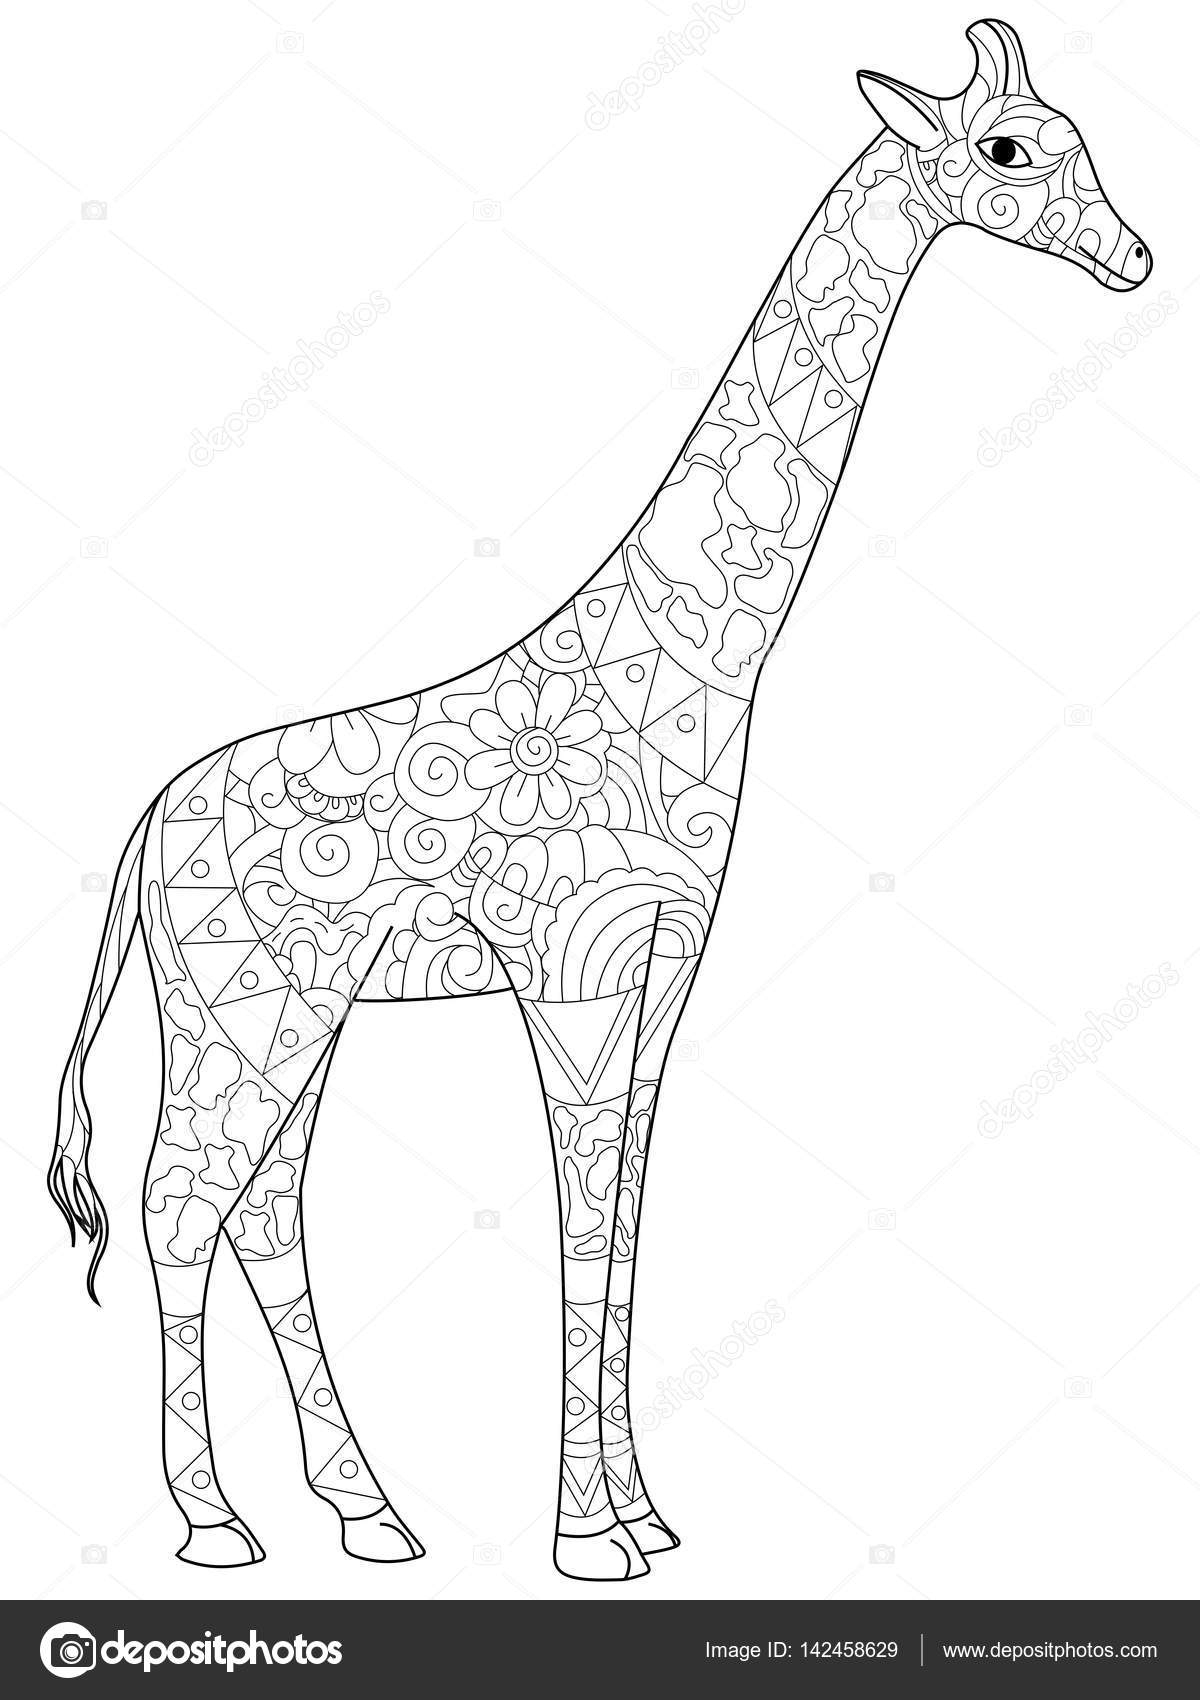 Giraffe Coloring Book For Adults Vector Illustration — Stock Vector ©  Toricheks2016.gmail.com #142458629